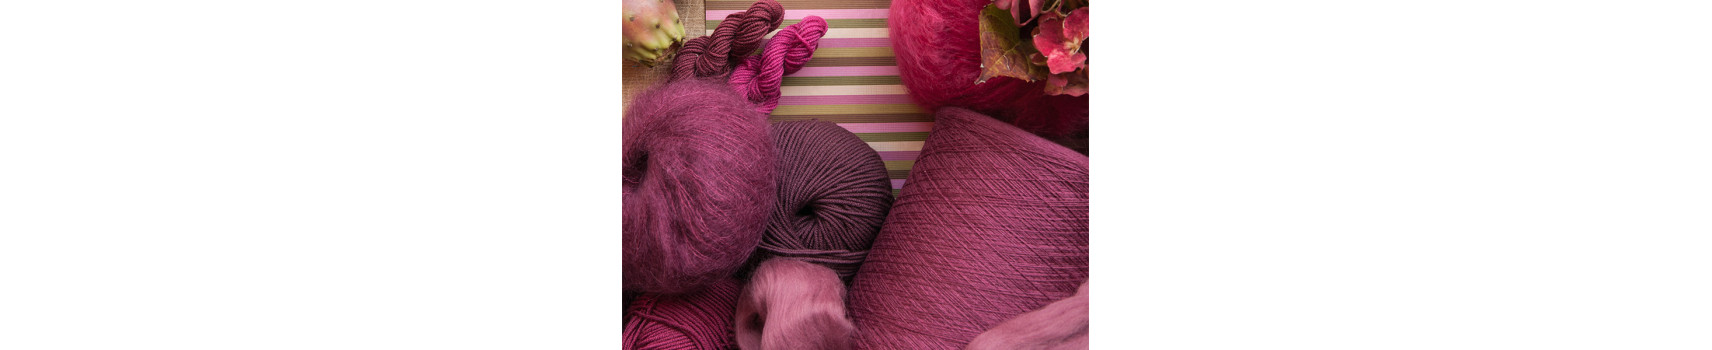 Discover the Fall/Winter yarns in the Lane Mondial collection!